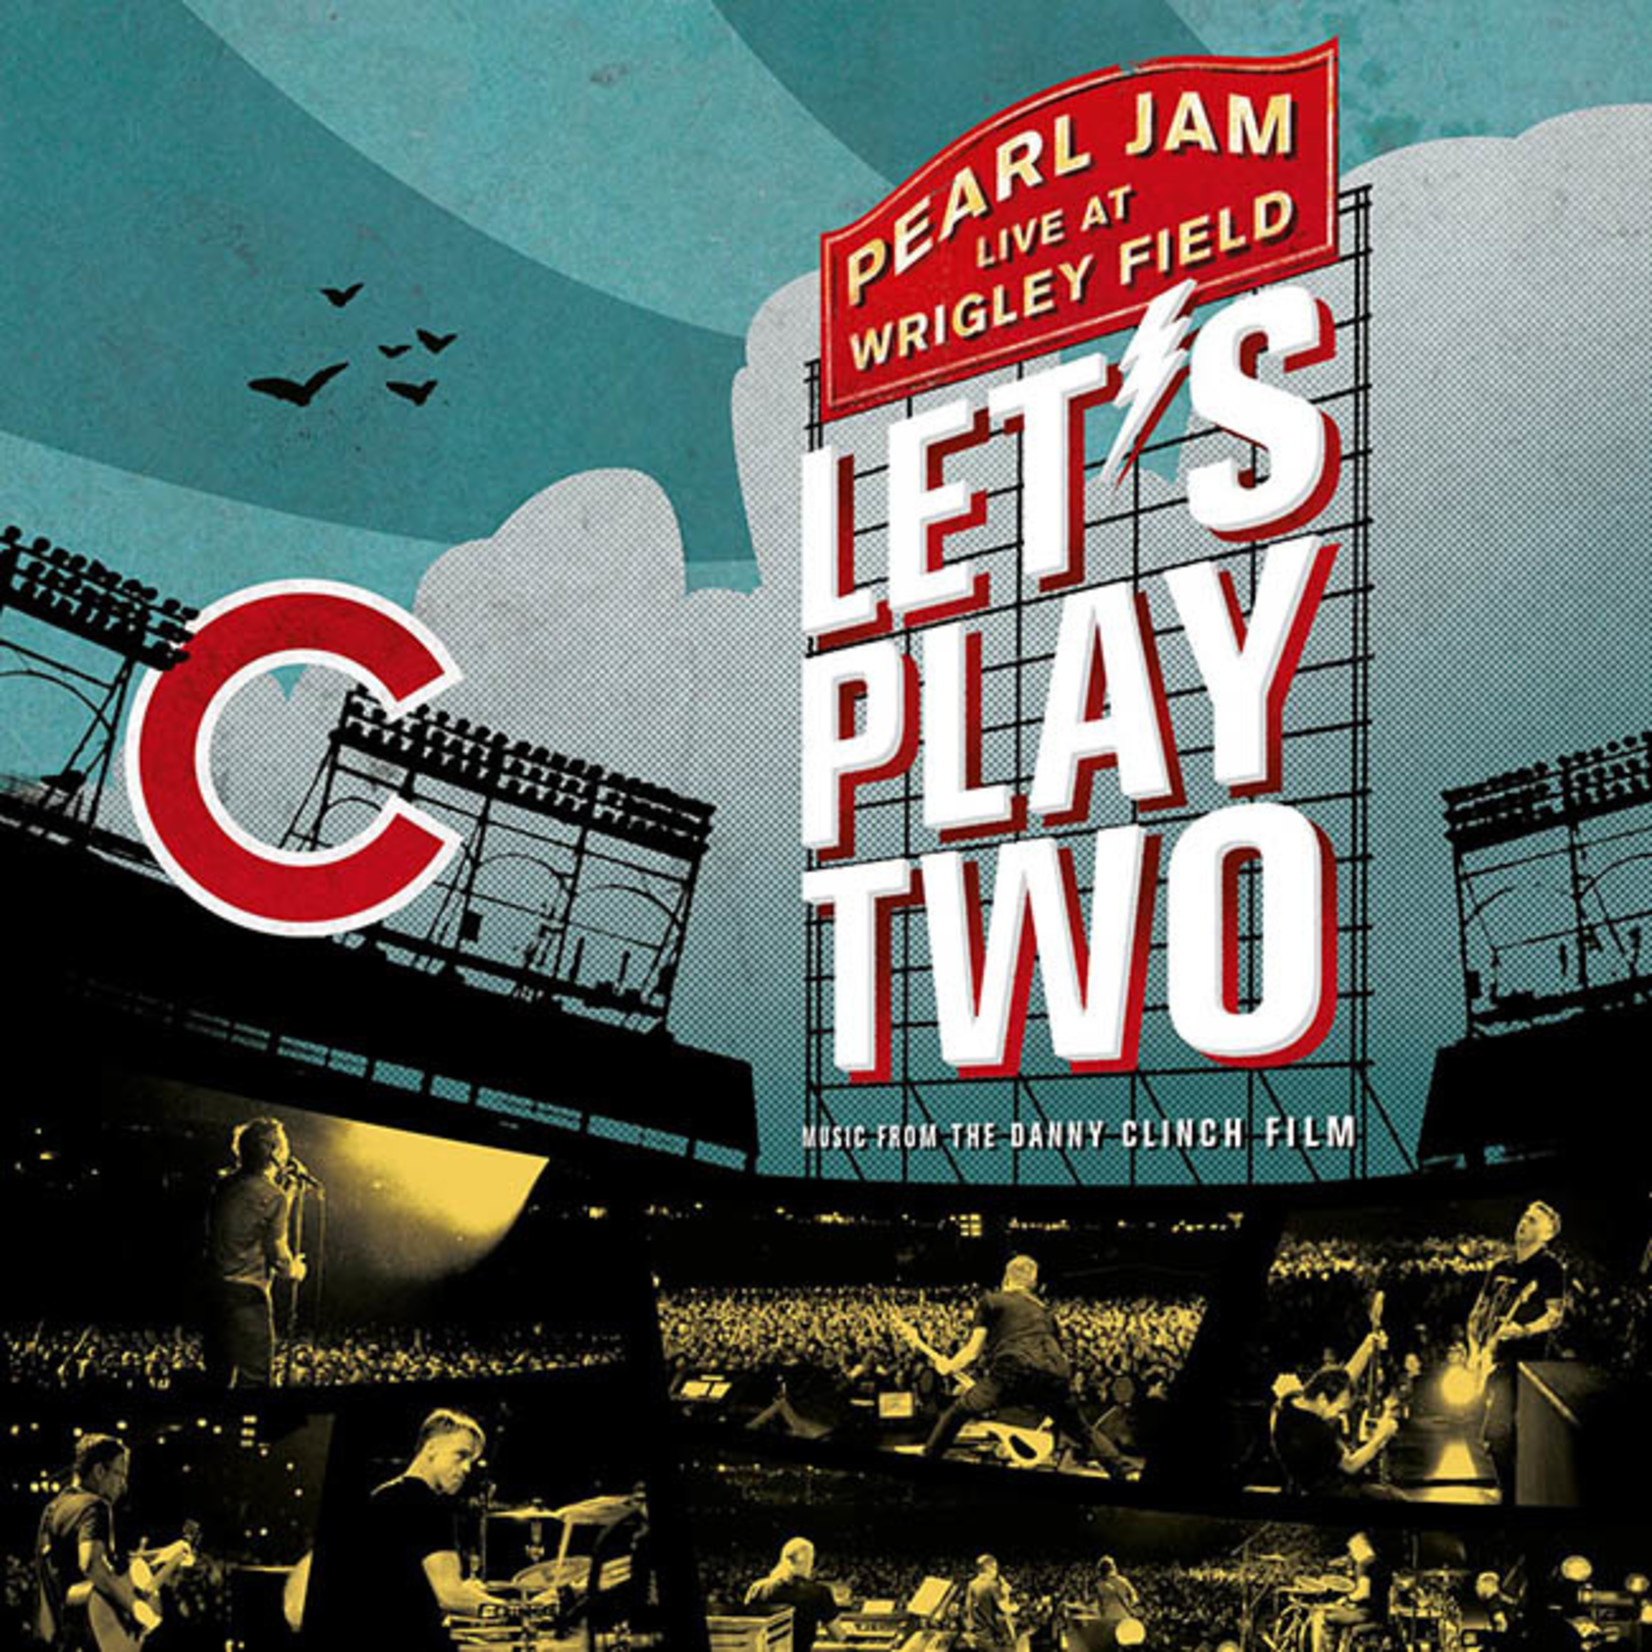 [New] Pearl Jam: Let's Play Two (2LP)